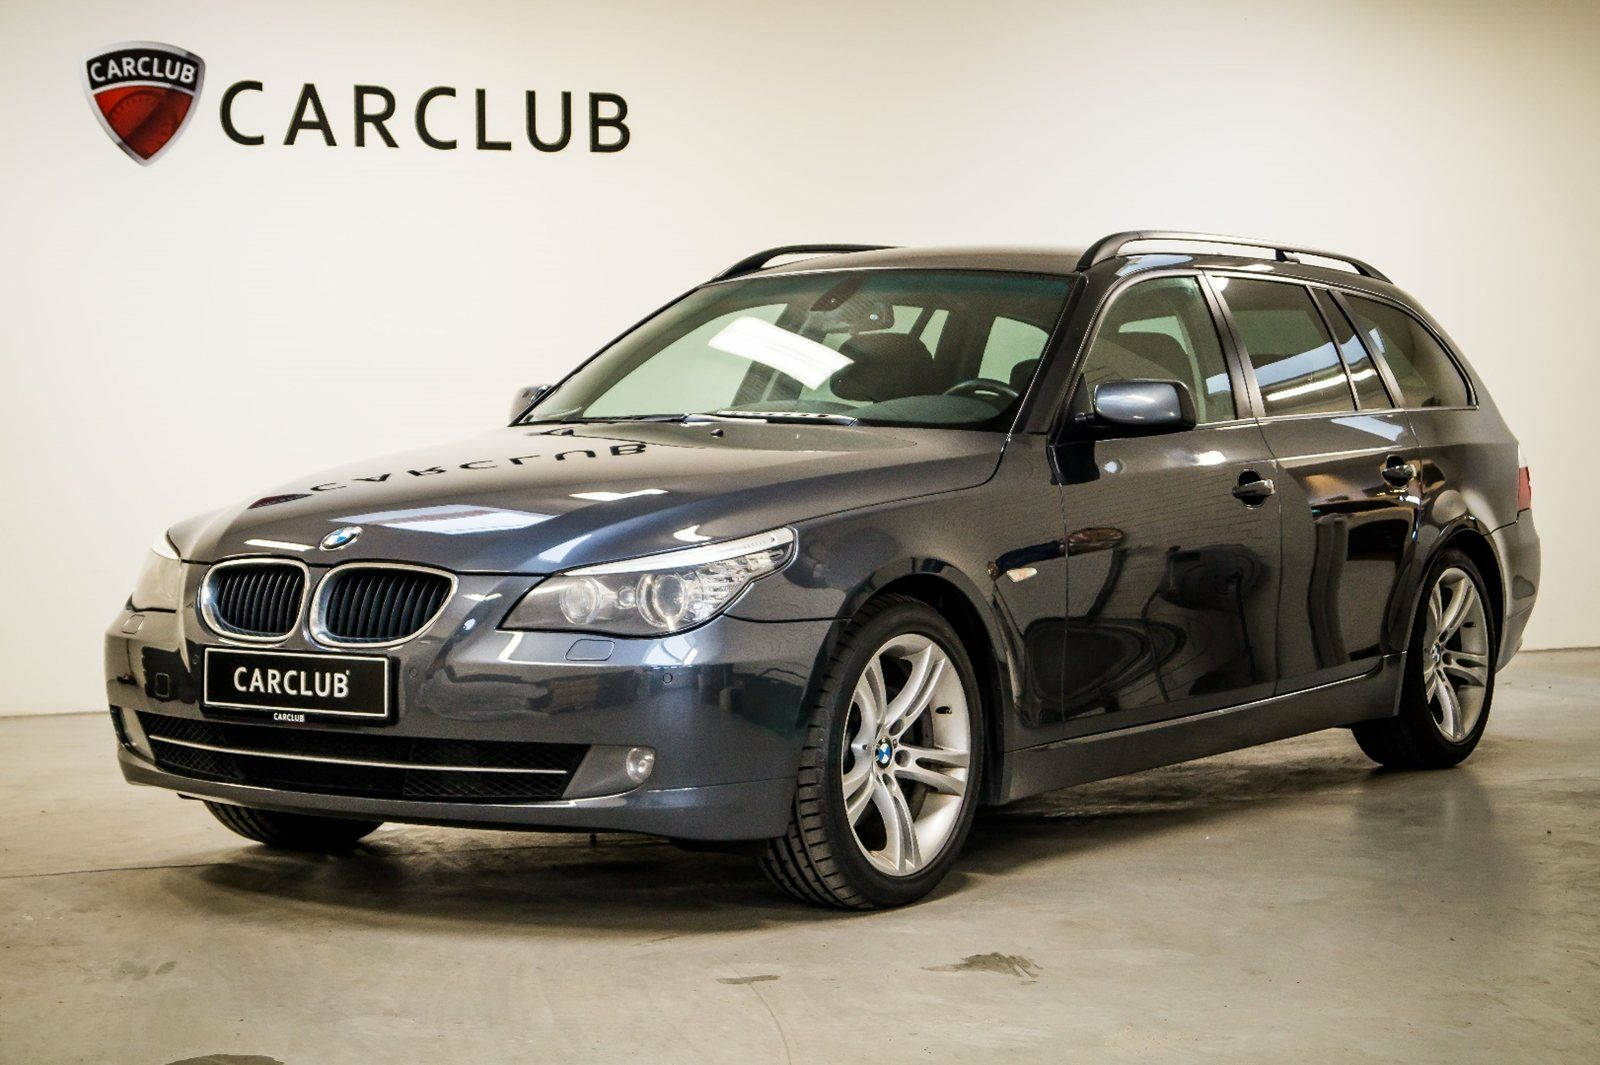 BMW 525d 3,0 Touring Steptr. 5d - 99.900 kr.